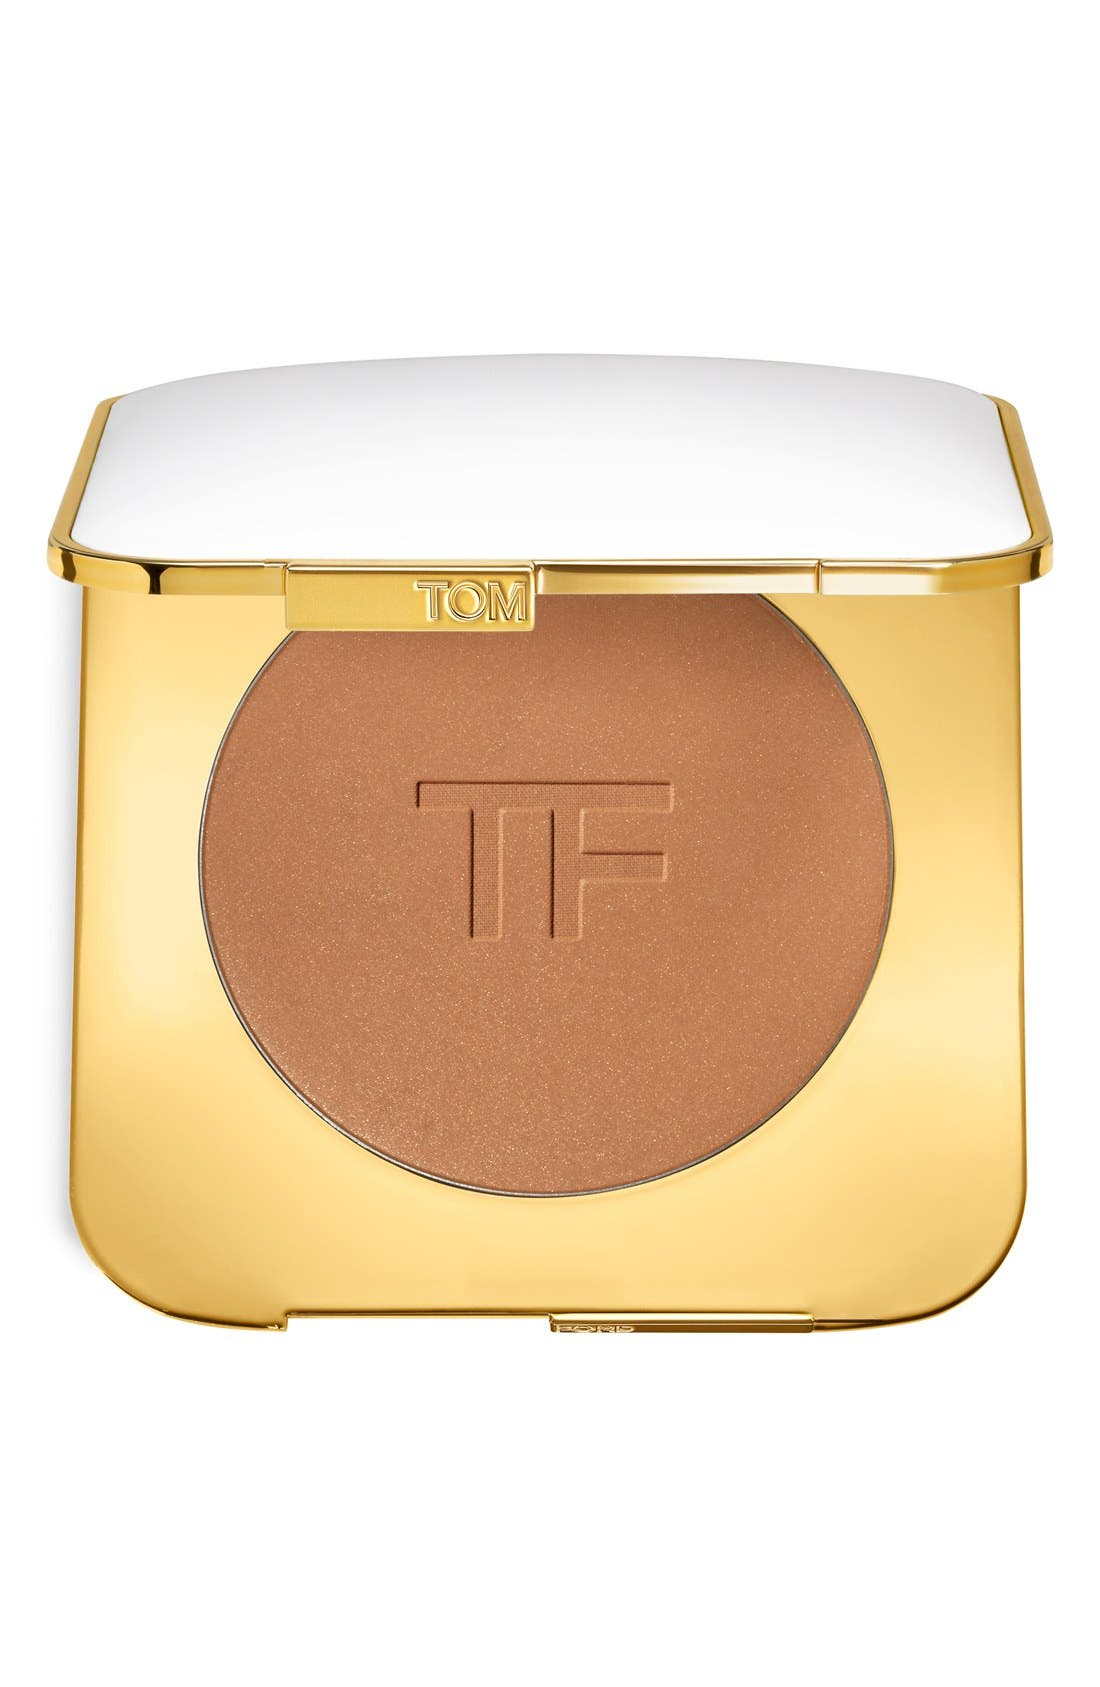 Tom Ford Small Bronzing Powder